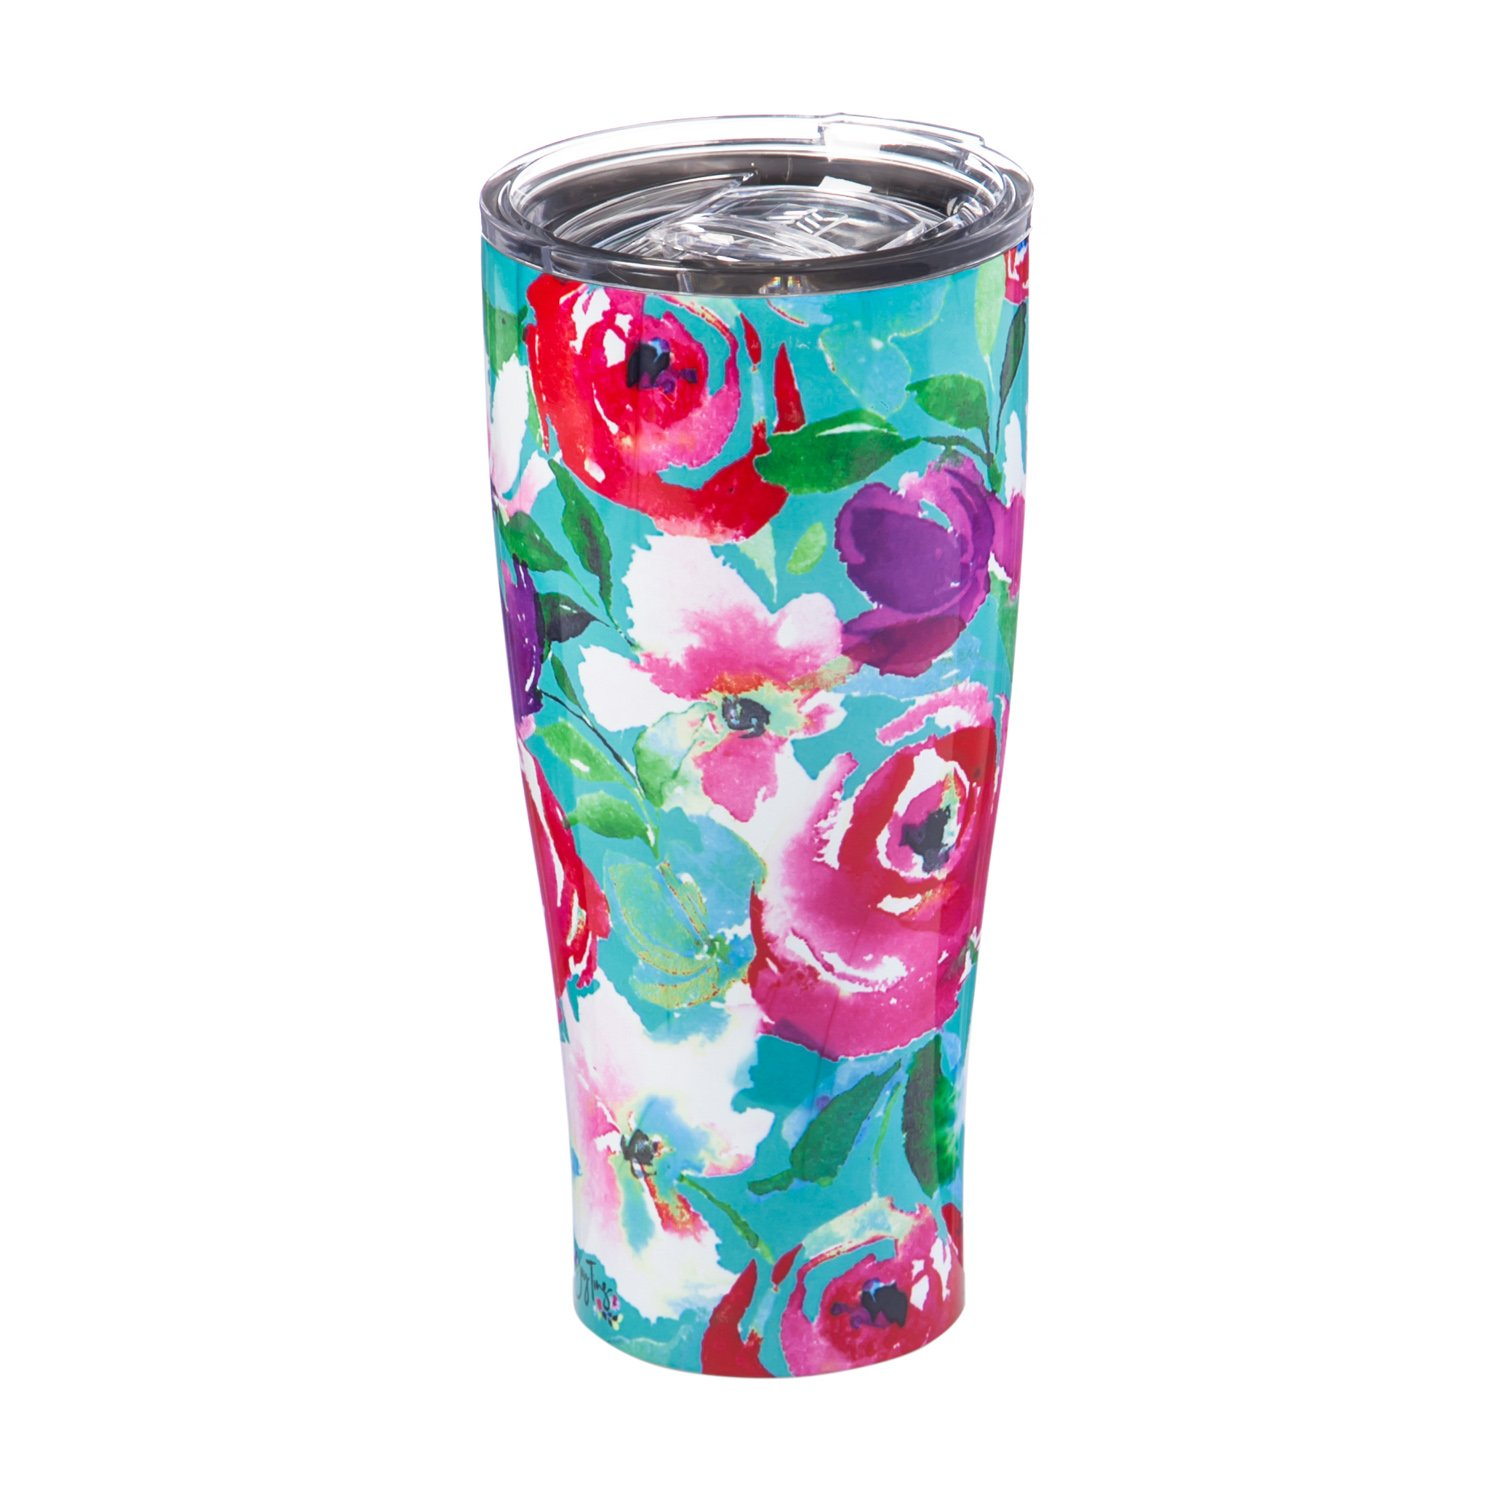 Cypress Home Boho Floral Party Stainless Steel Hot Beverage Travel Cup, 17 ounces by Cypress Home (Image #1)